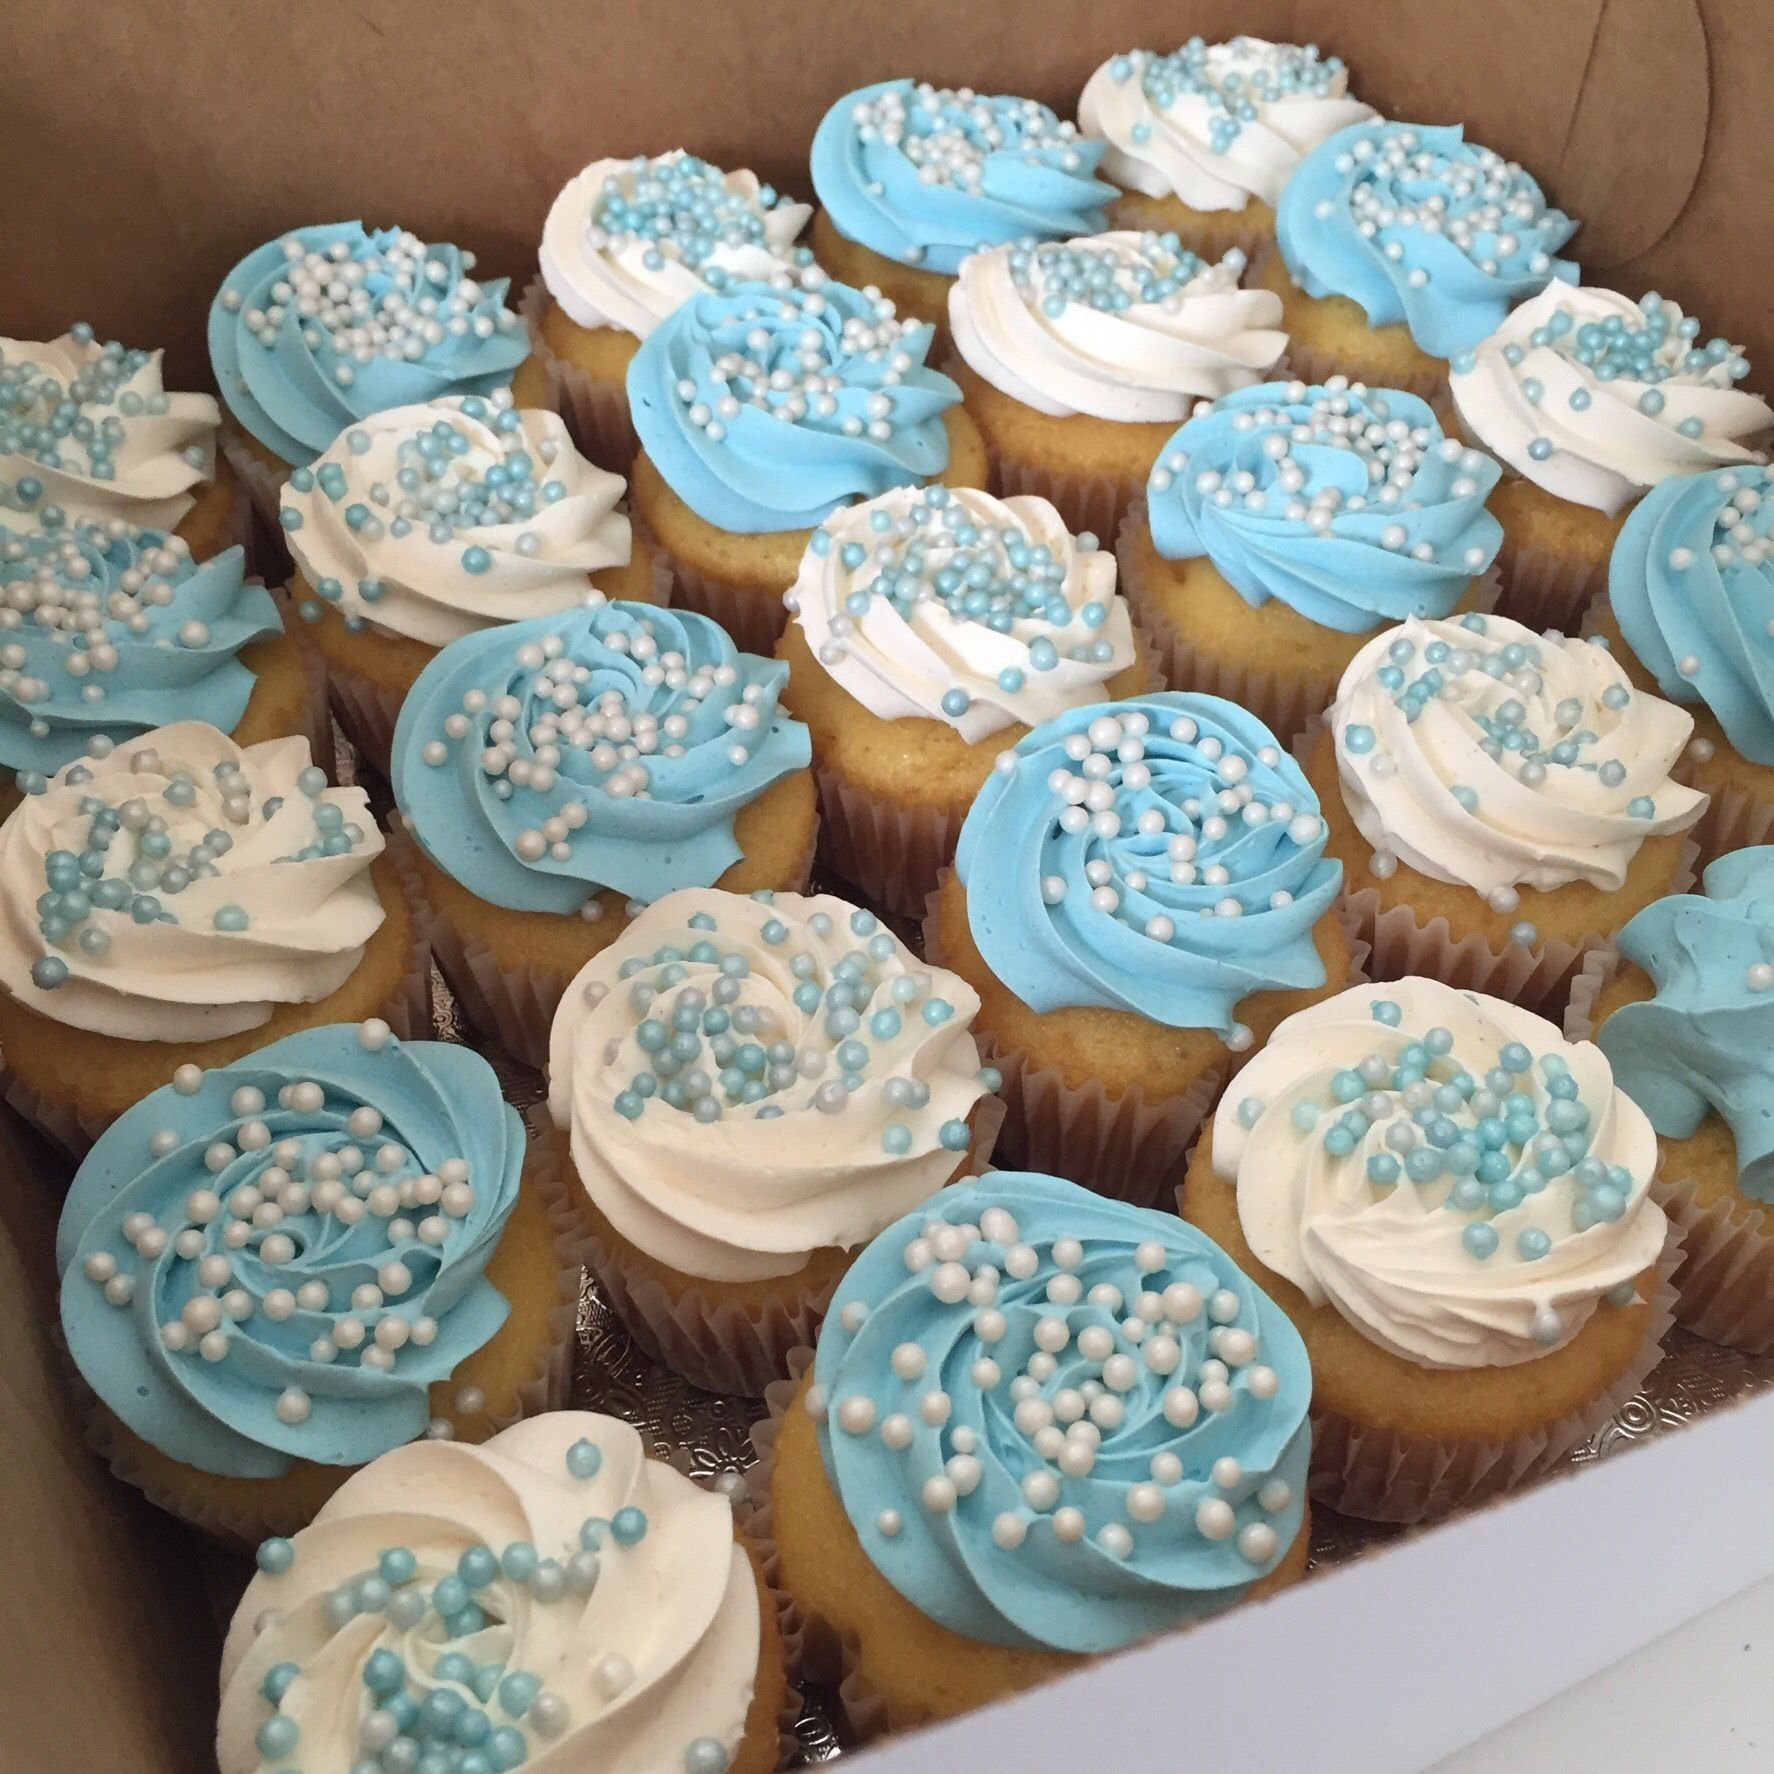 10 Famous Boy Baby Shower Cakes Ideas blue and white baby shower cupcake all things cake pinterest 2020